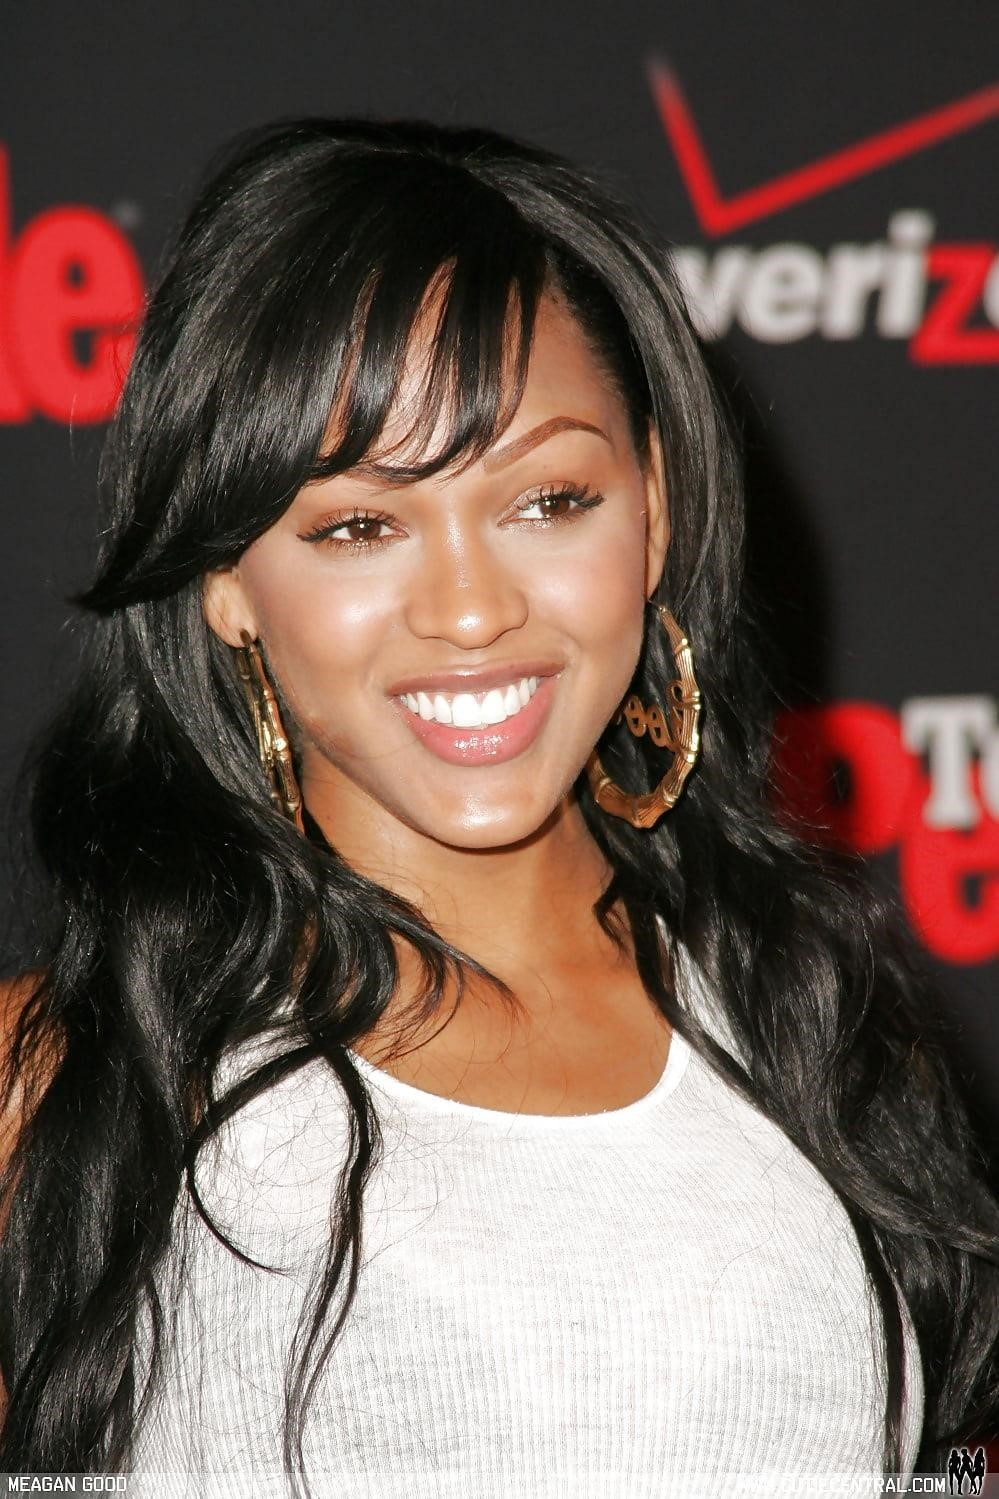 Meagan good nude pictures-7140